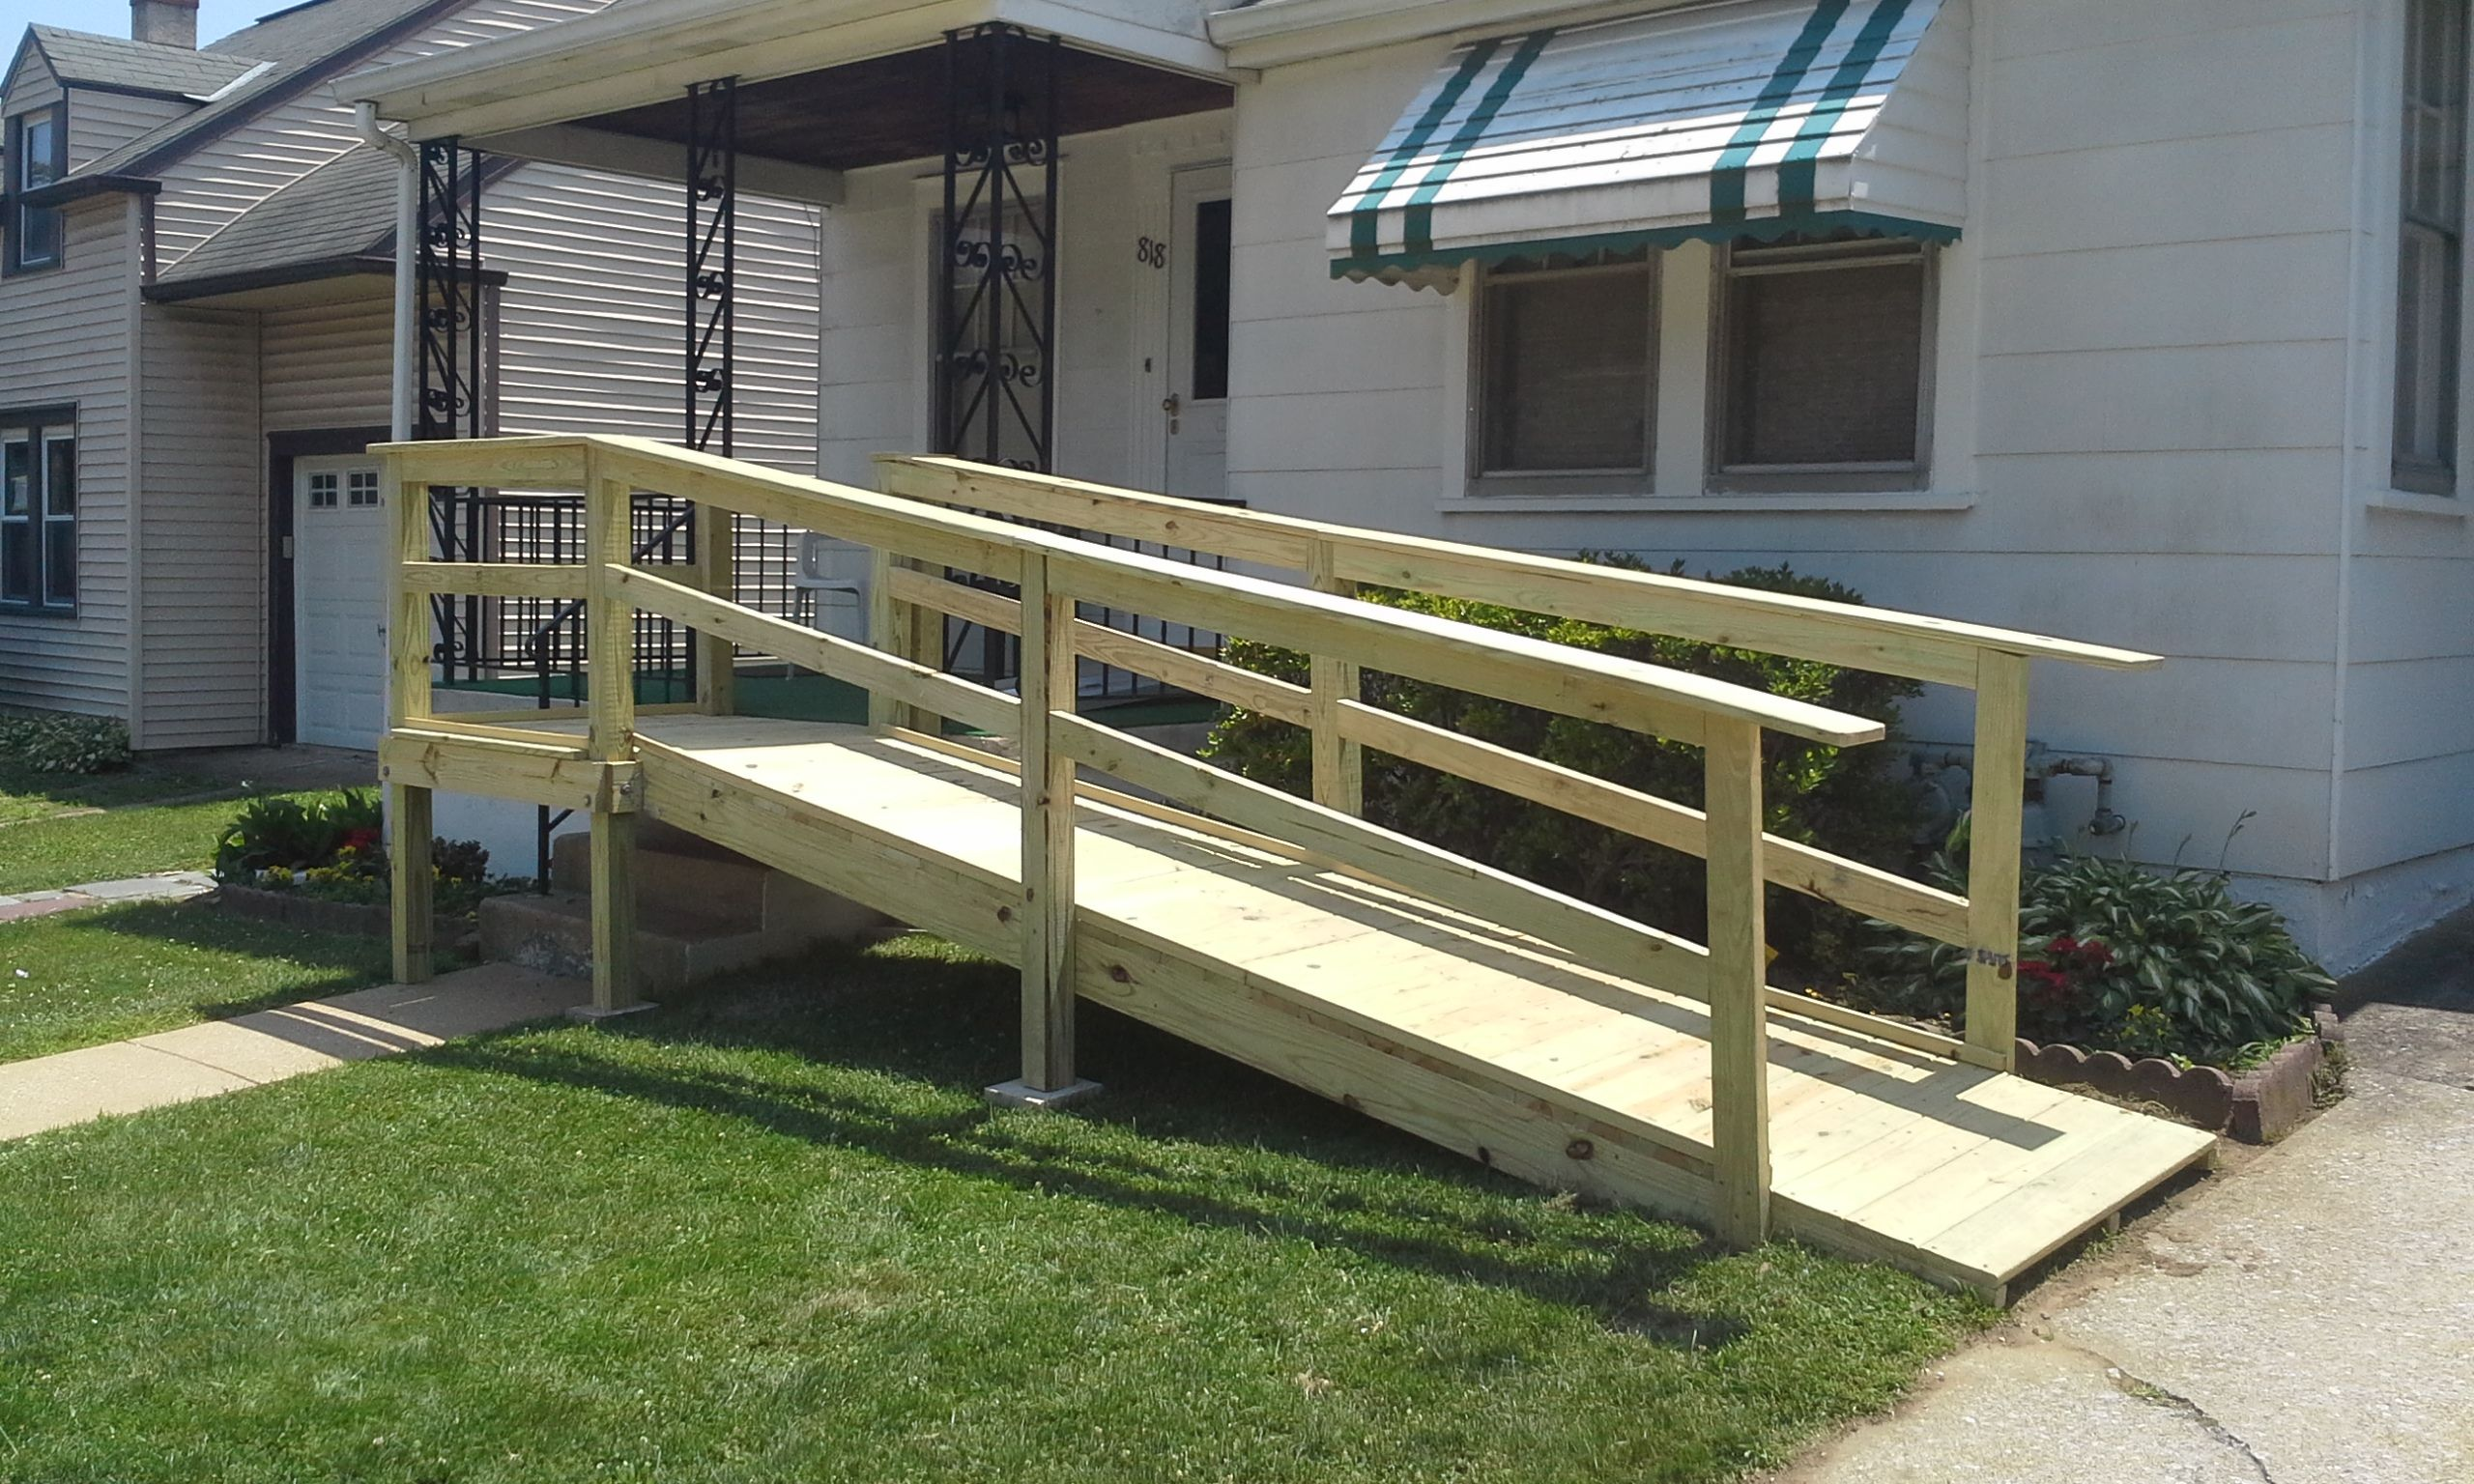 wheelchair housing design guide antique high back chairs ramp drawing at getdrawings free for